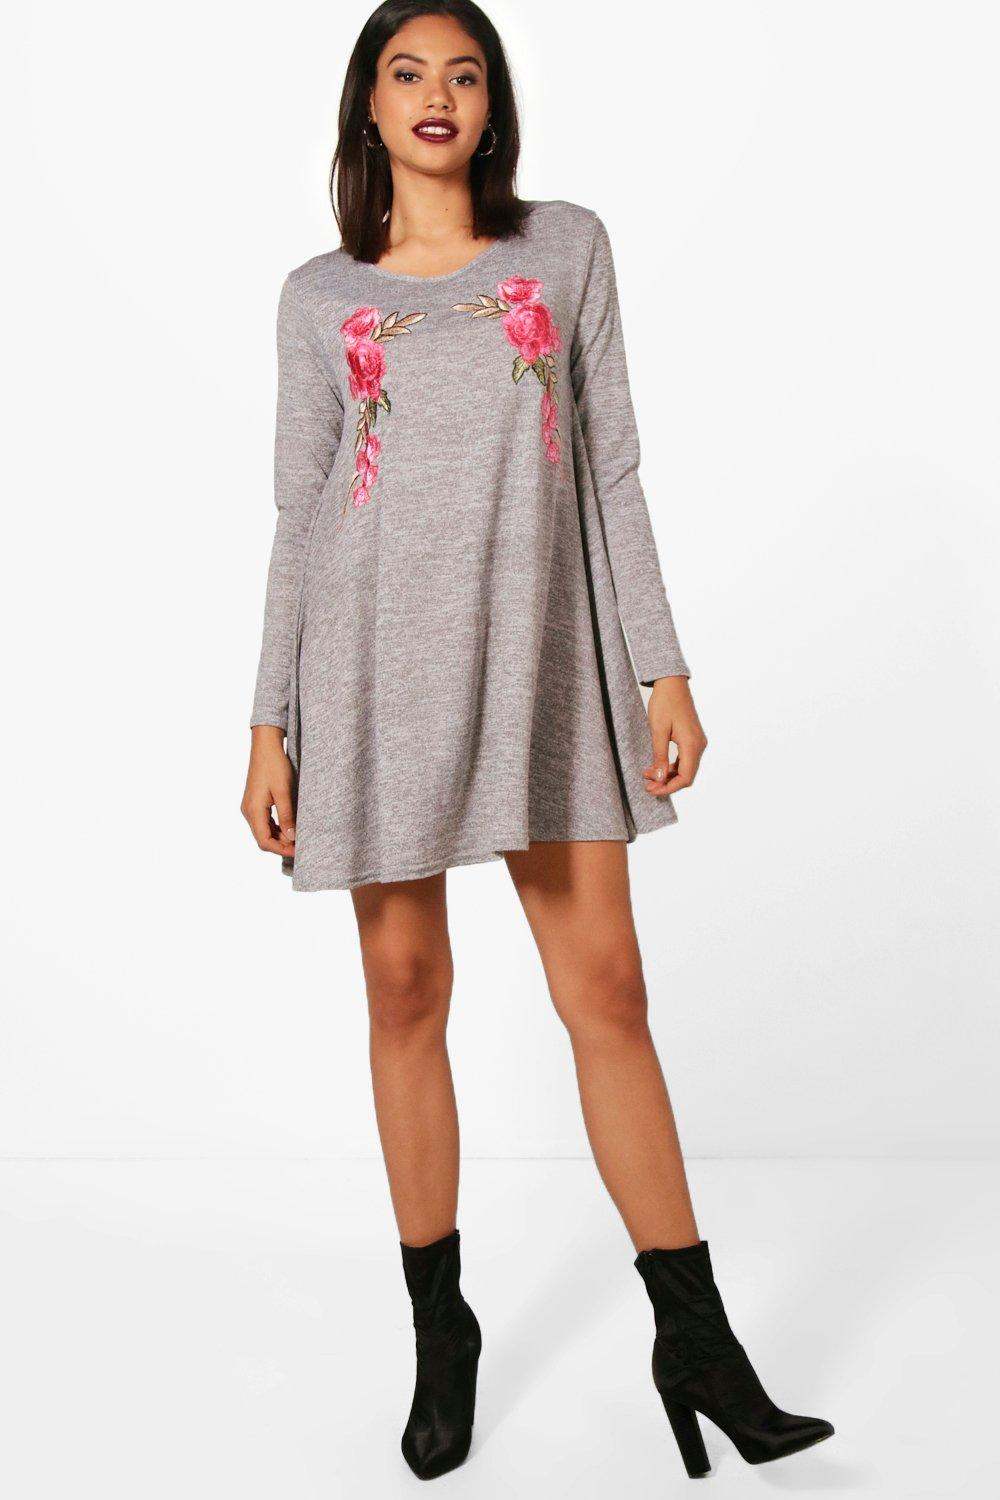 3dba5fe3966 Womens Embroidered Knit Swing Dress. Hover to zoom